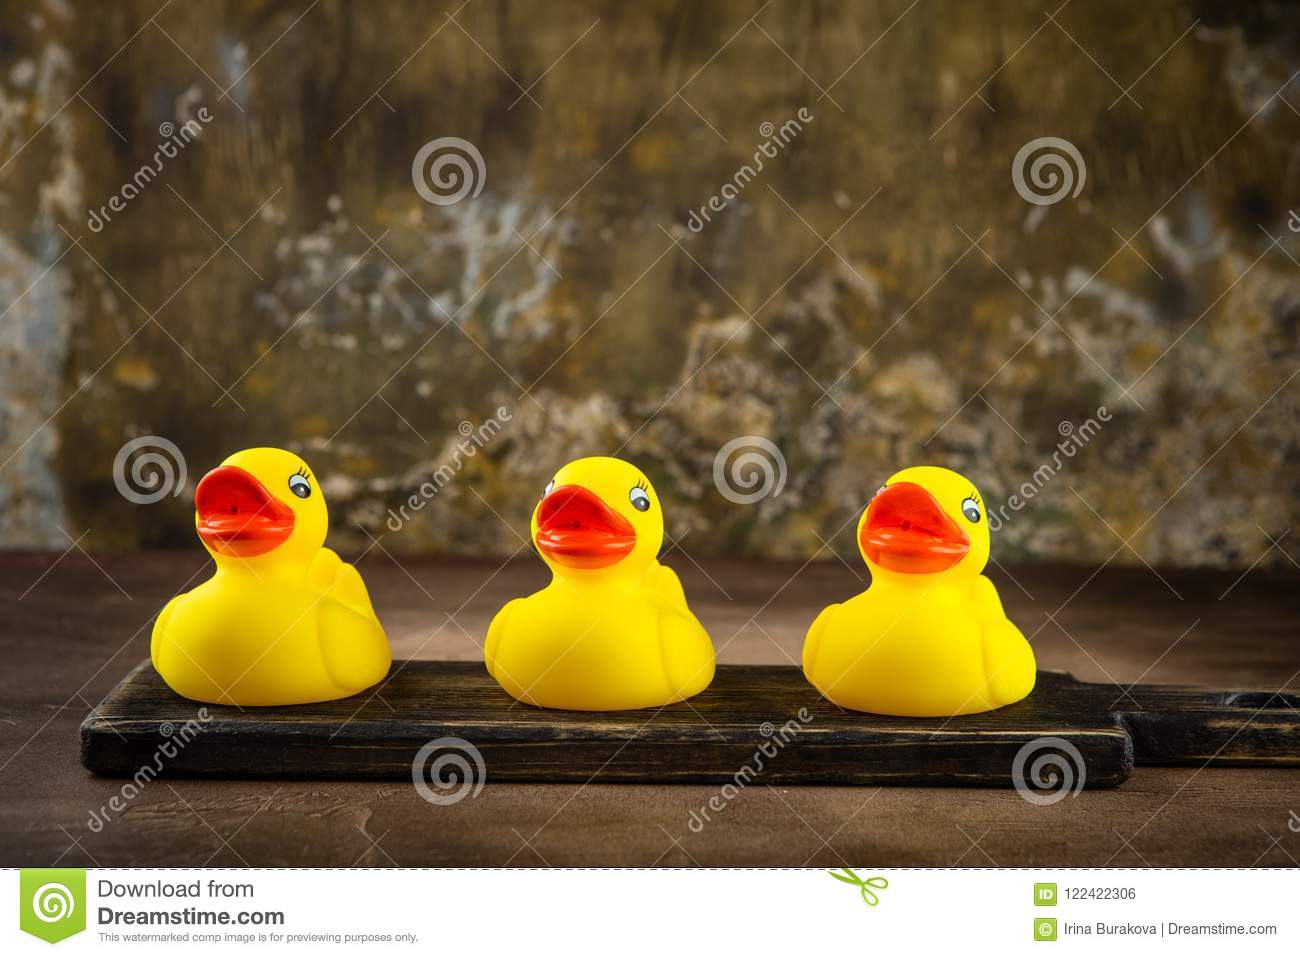 Yellow rubber ducks stock photo. Image of rubber, happy - 122422306